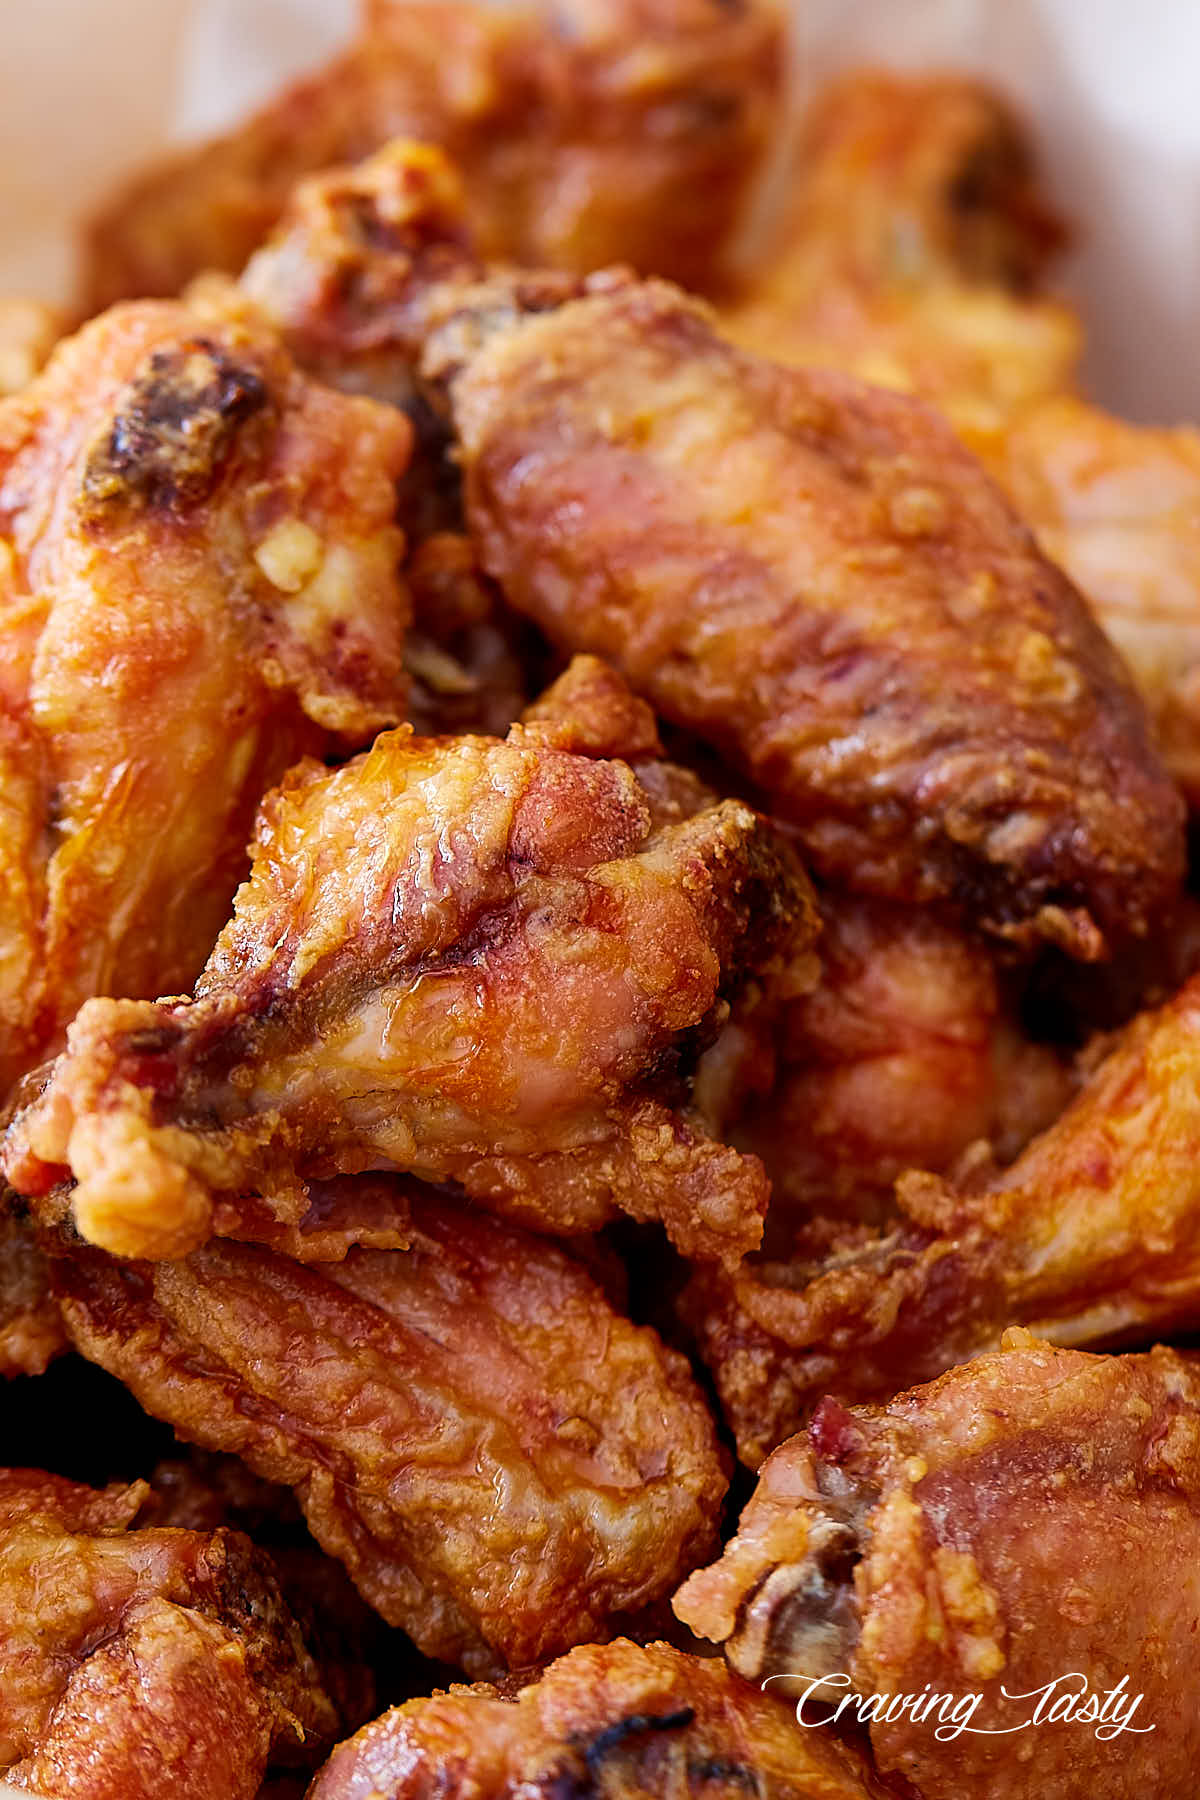 Close up of extra crispy chicken wings in a serving basket.